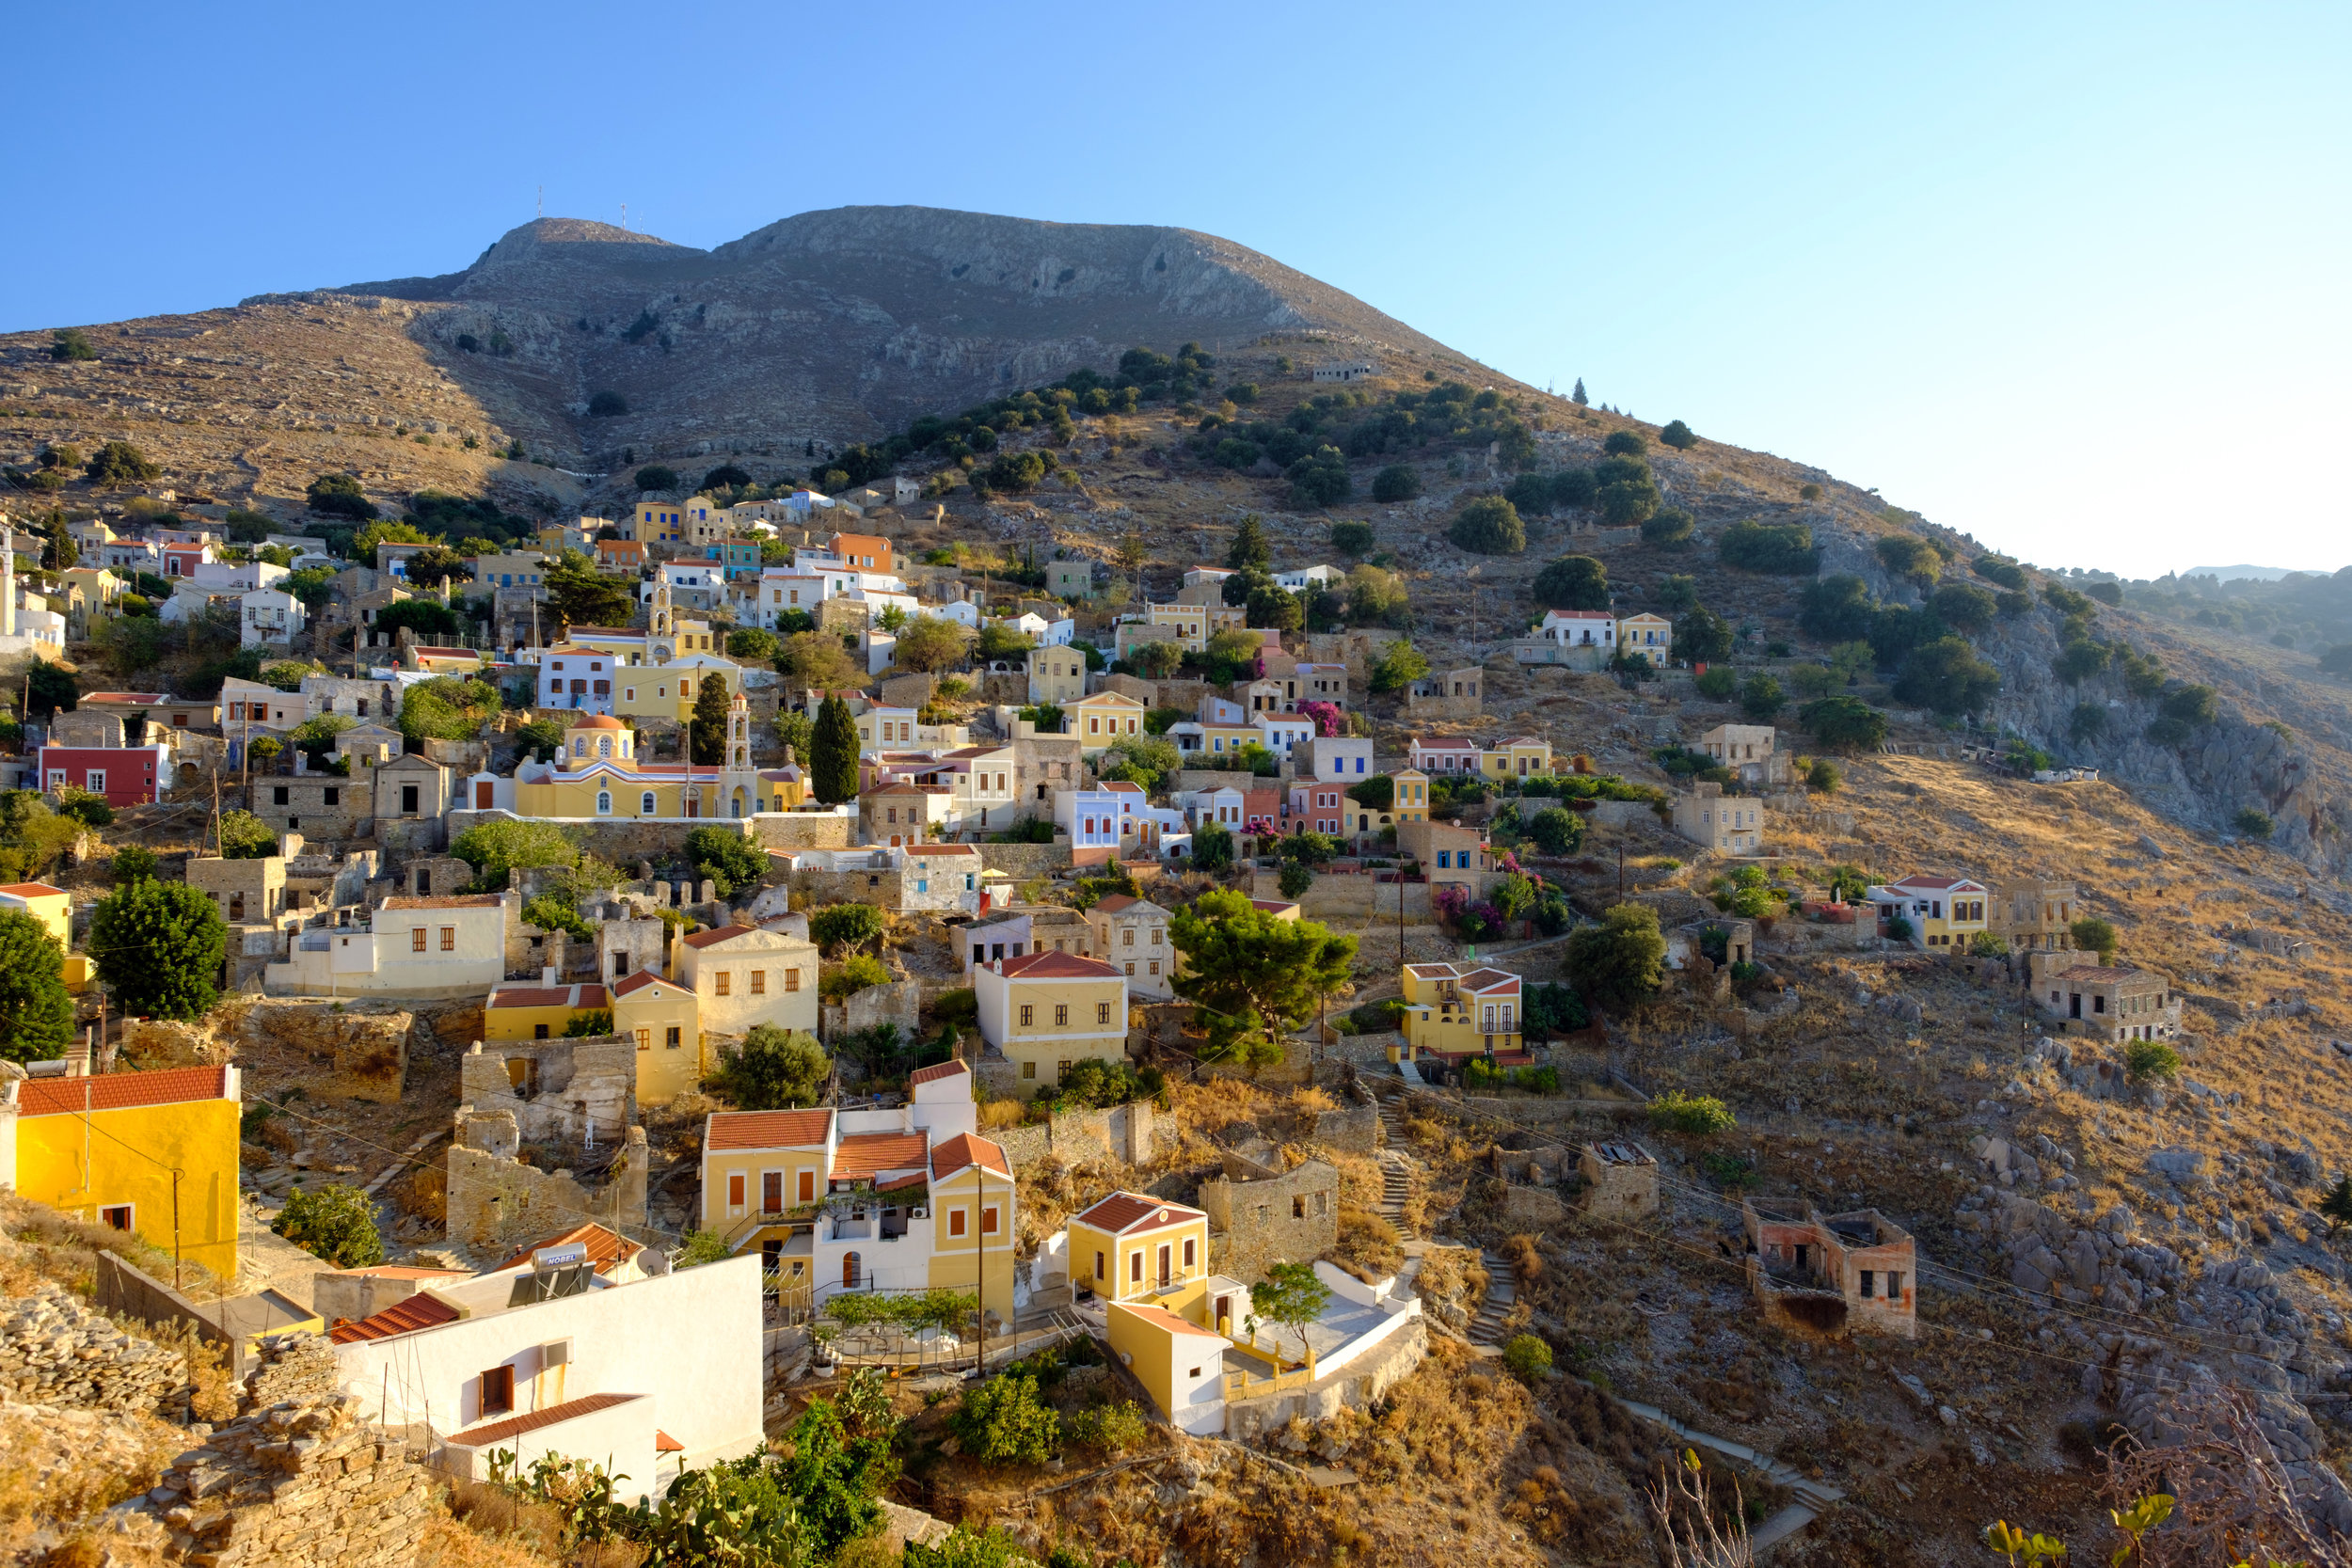 View of the the homes from above. The town of Symiin Greece